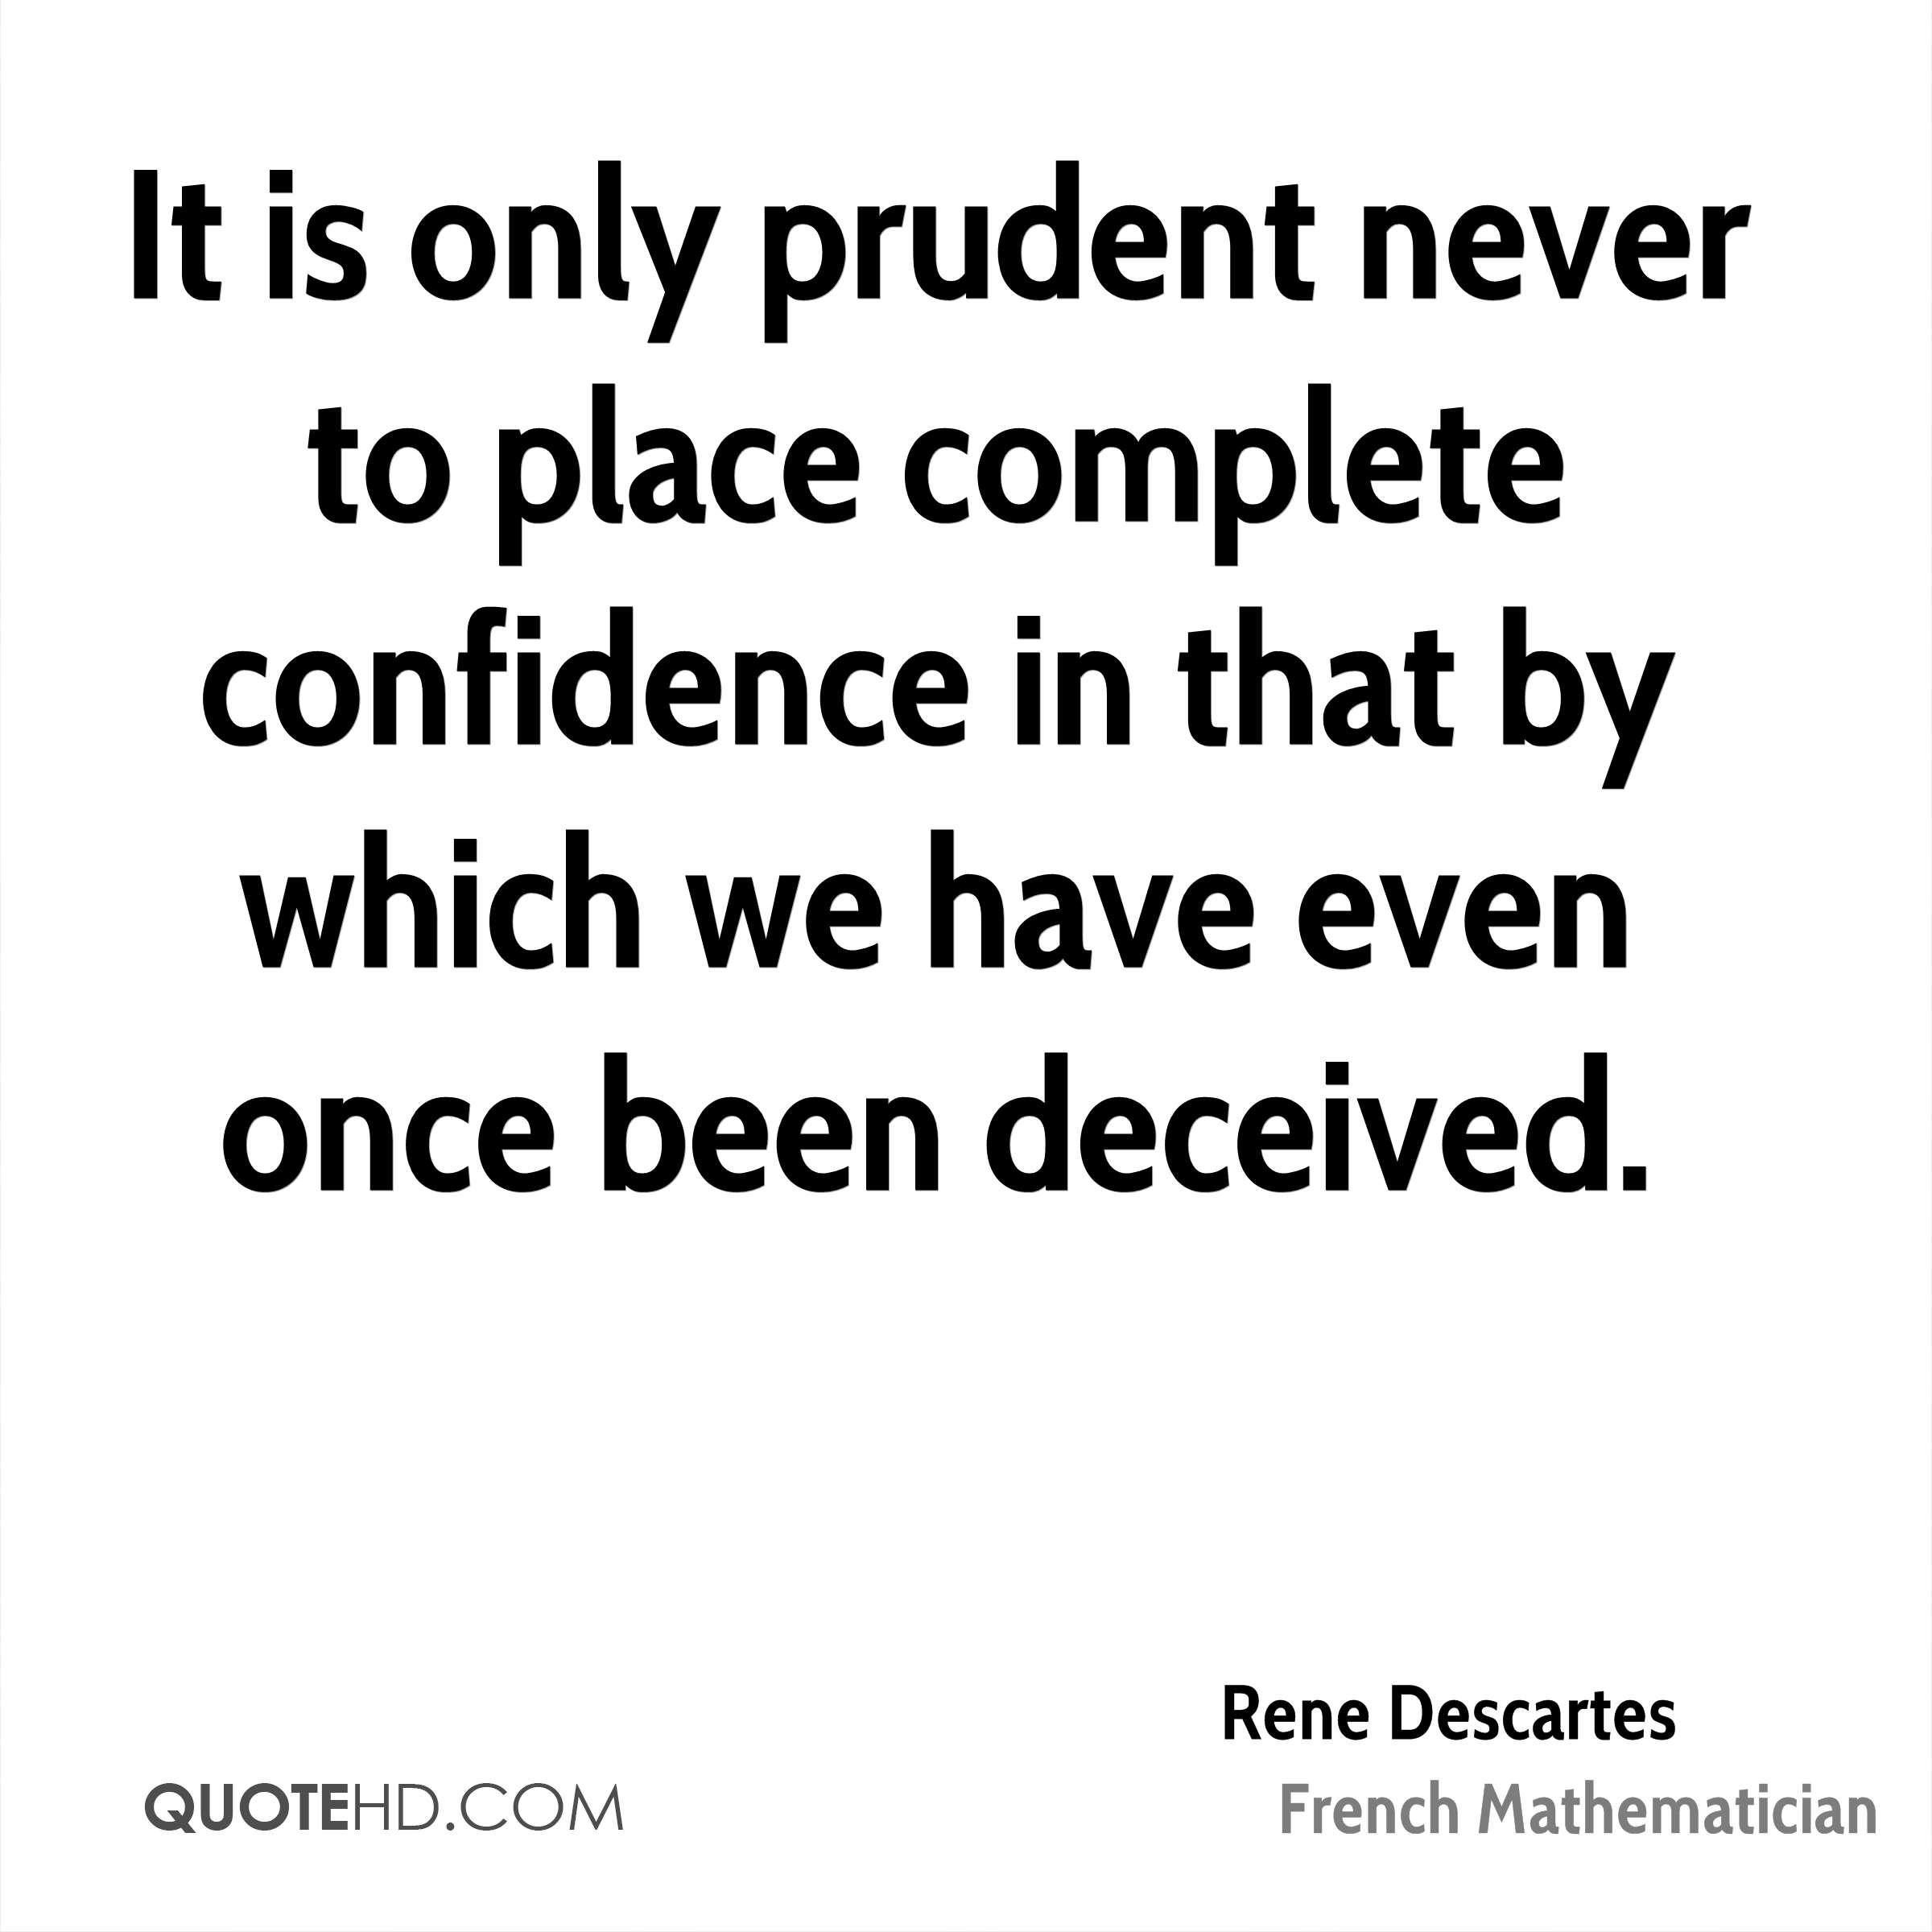 It is only prudent never to place complete confidence in that by which we have even once been deceived.